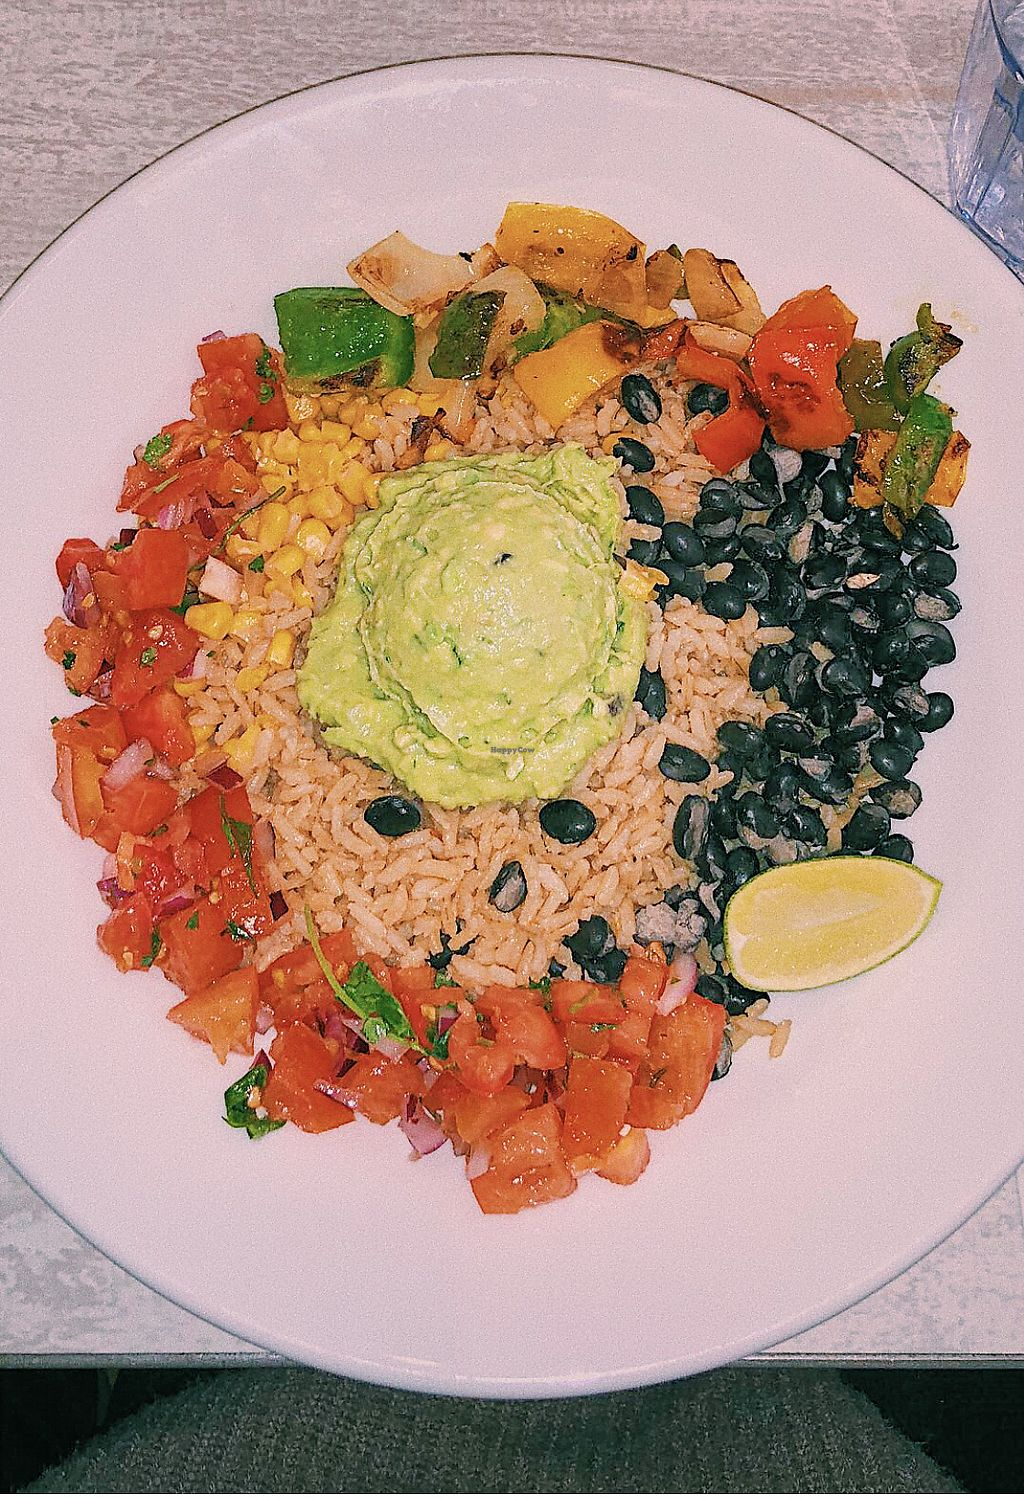 """Photo of Simply Green Cafe  by <a href=""""/members/profile/taylorlevitt"""">taylorlevitt</a> <br/>Plantiful bowl <br/> December 26, 2017  - <a href='/contact/abuse/image/93872/339275'>Report</a>"""